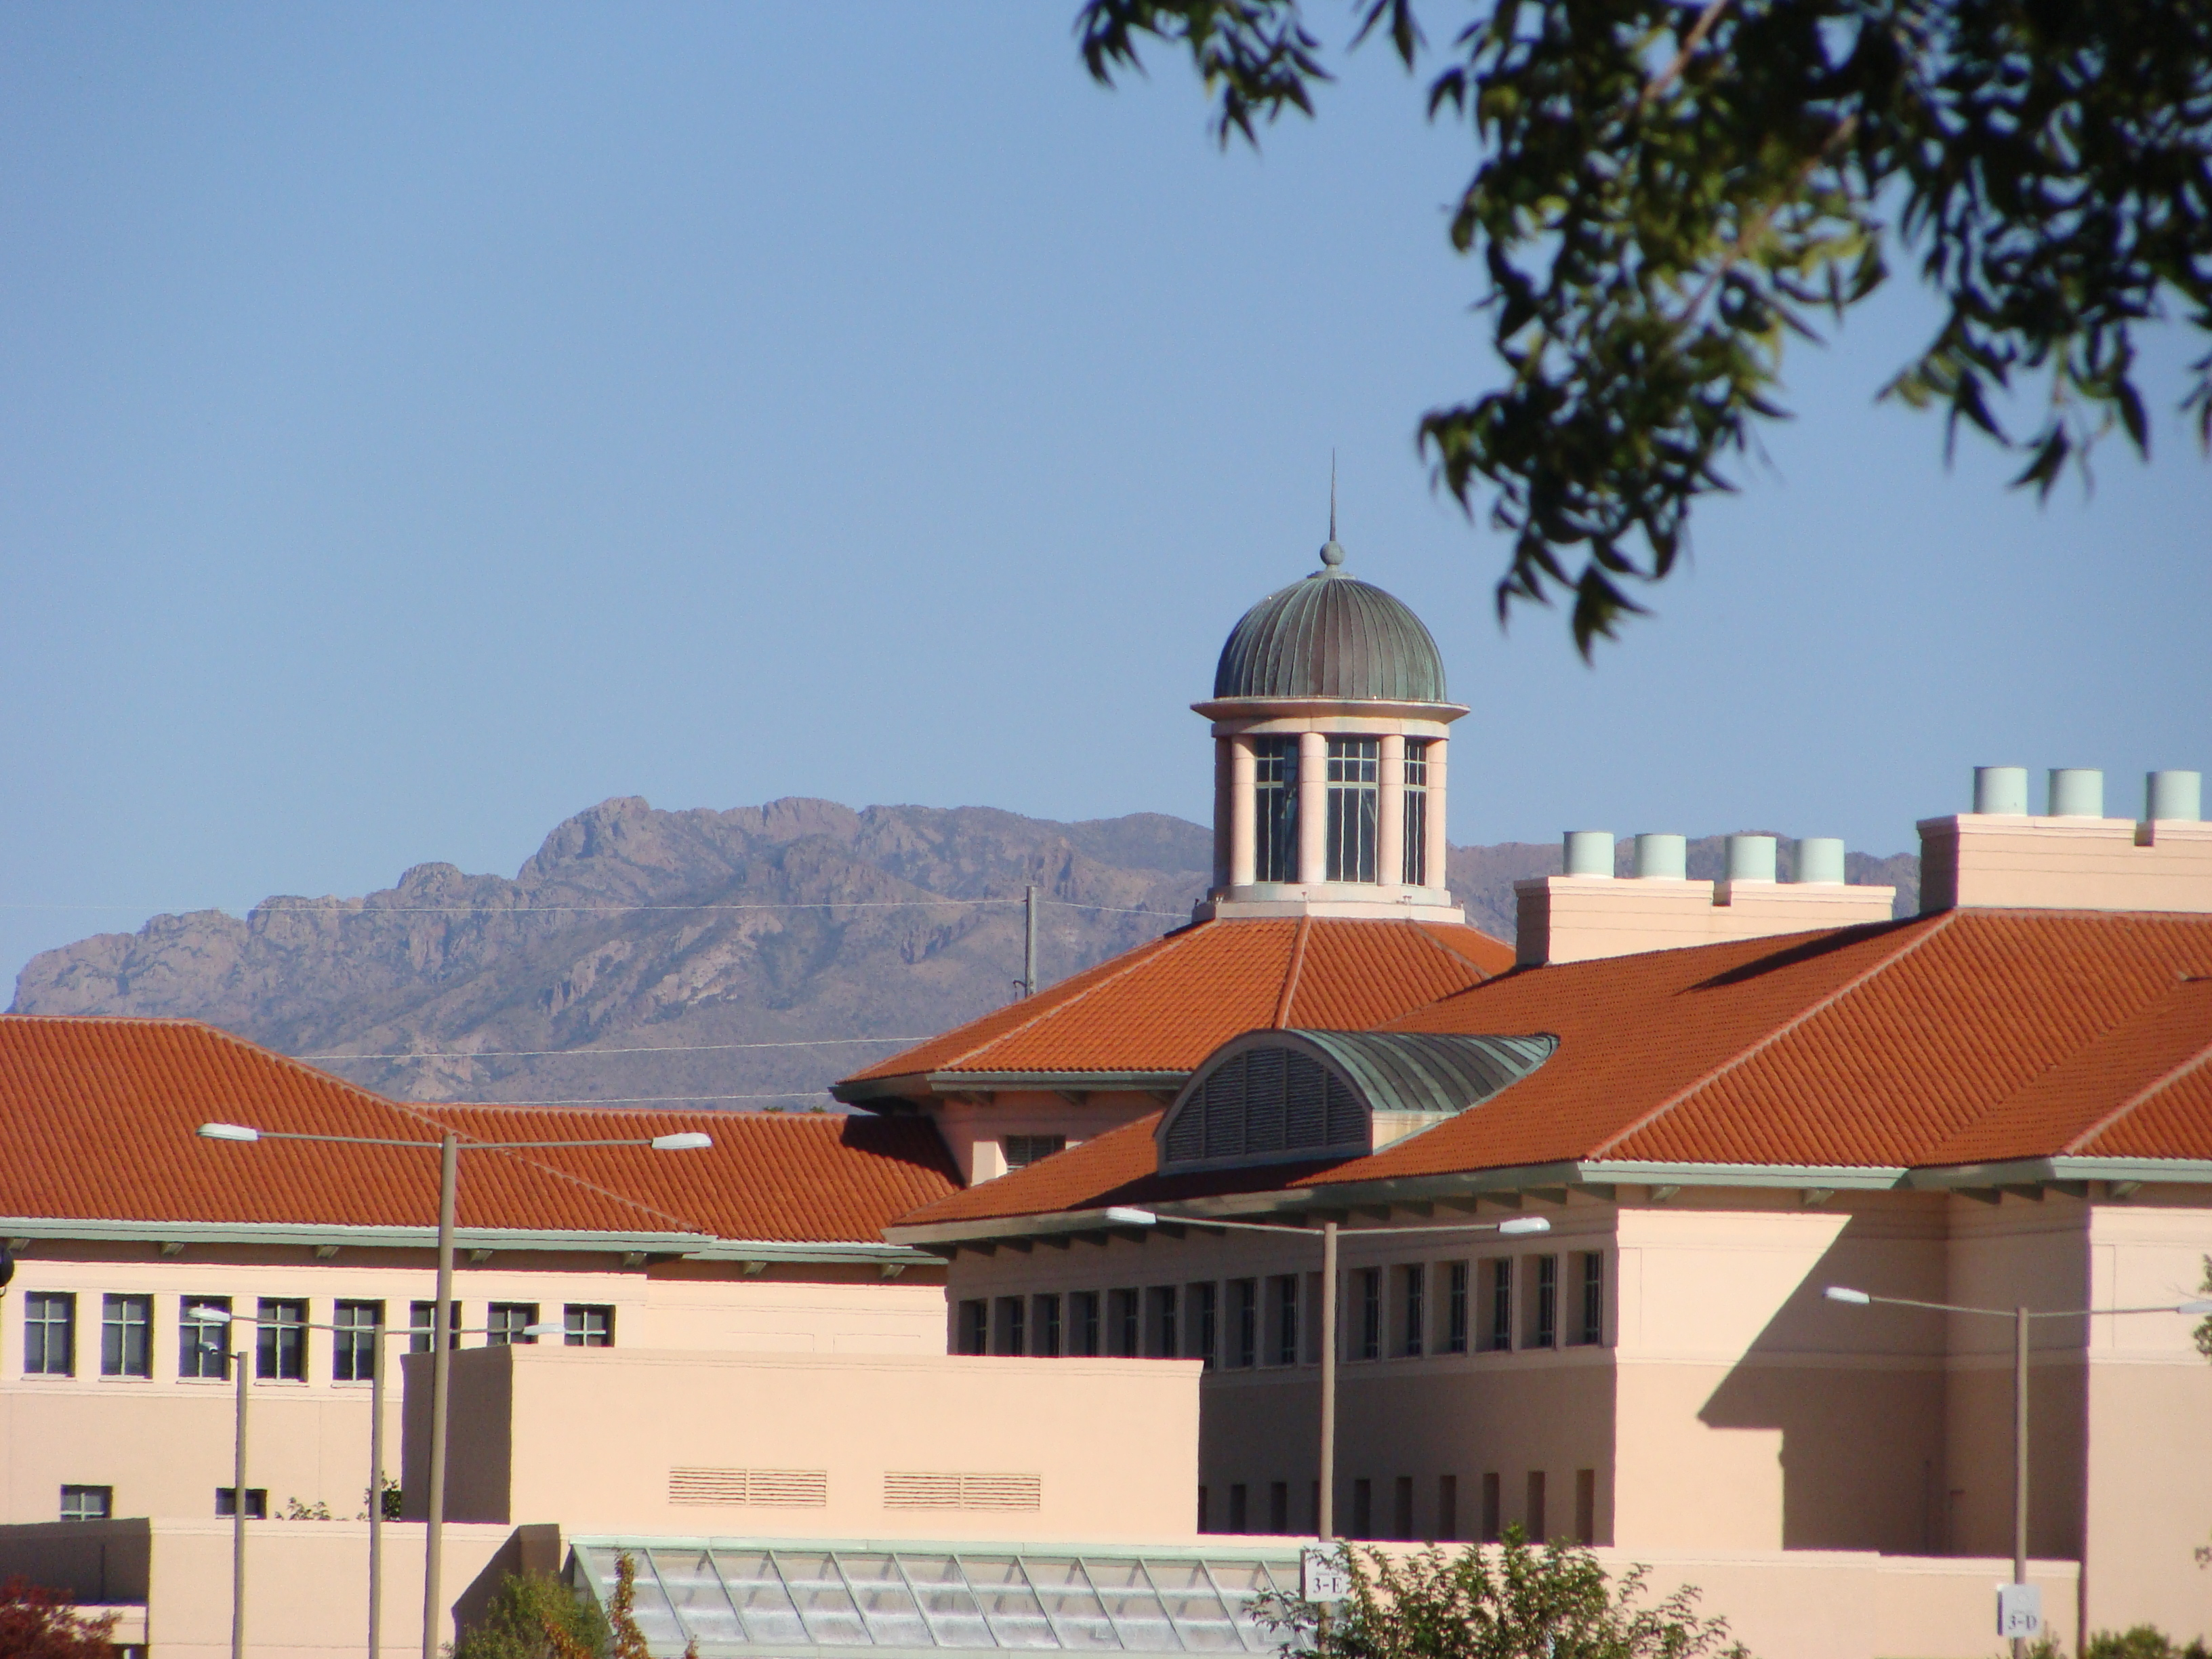 New mexico dona ana county garfield - Las Cruces Hosts The Main Campus Of The New Mexico State University